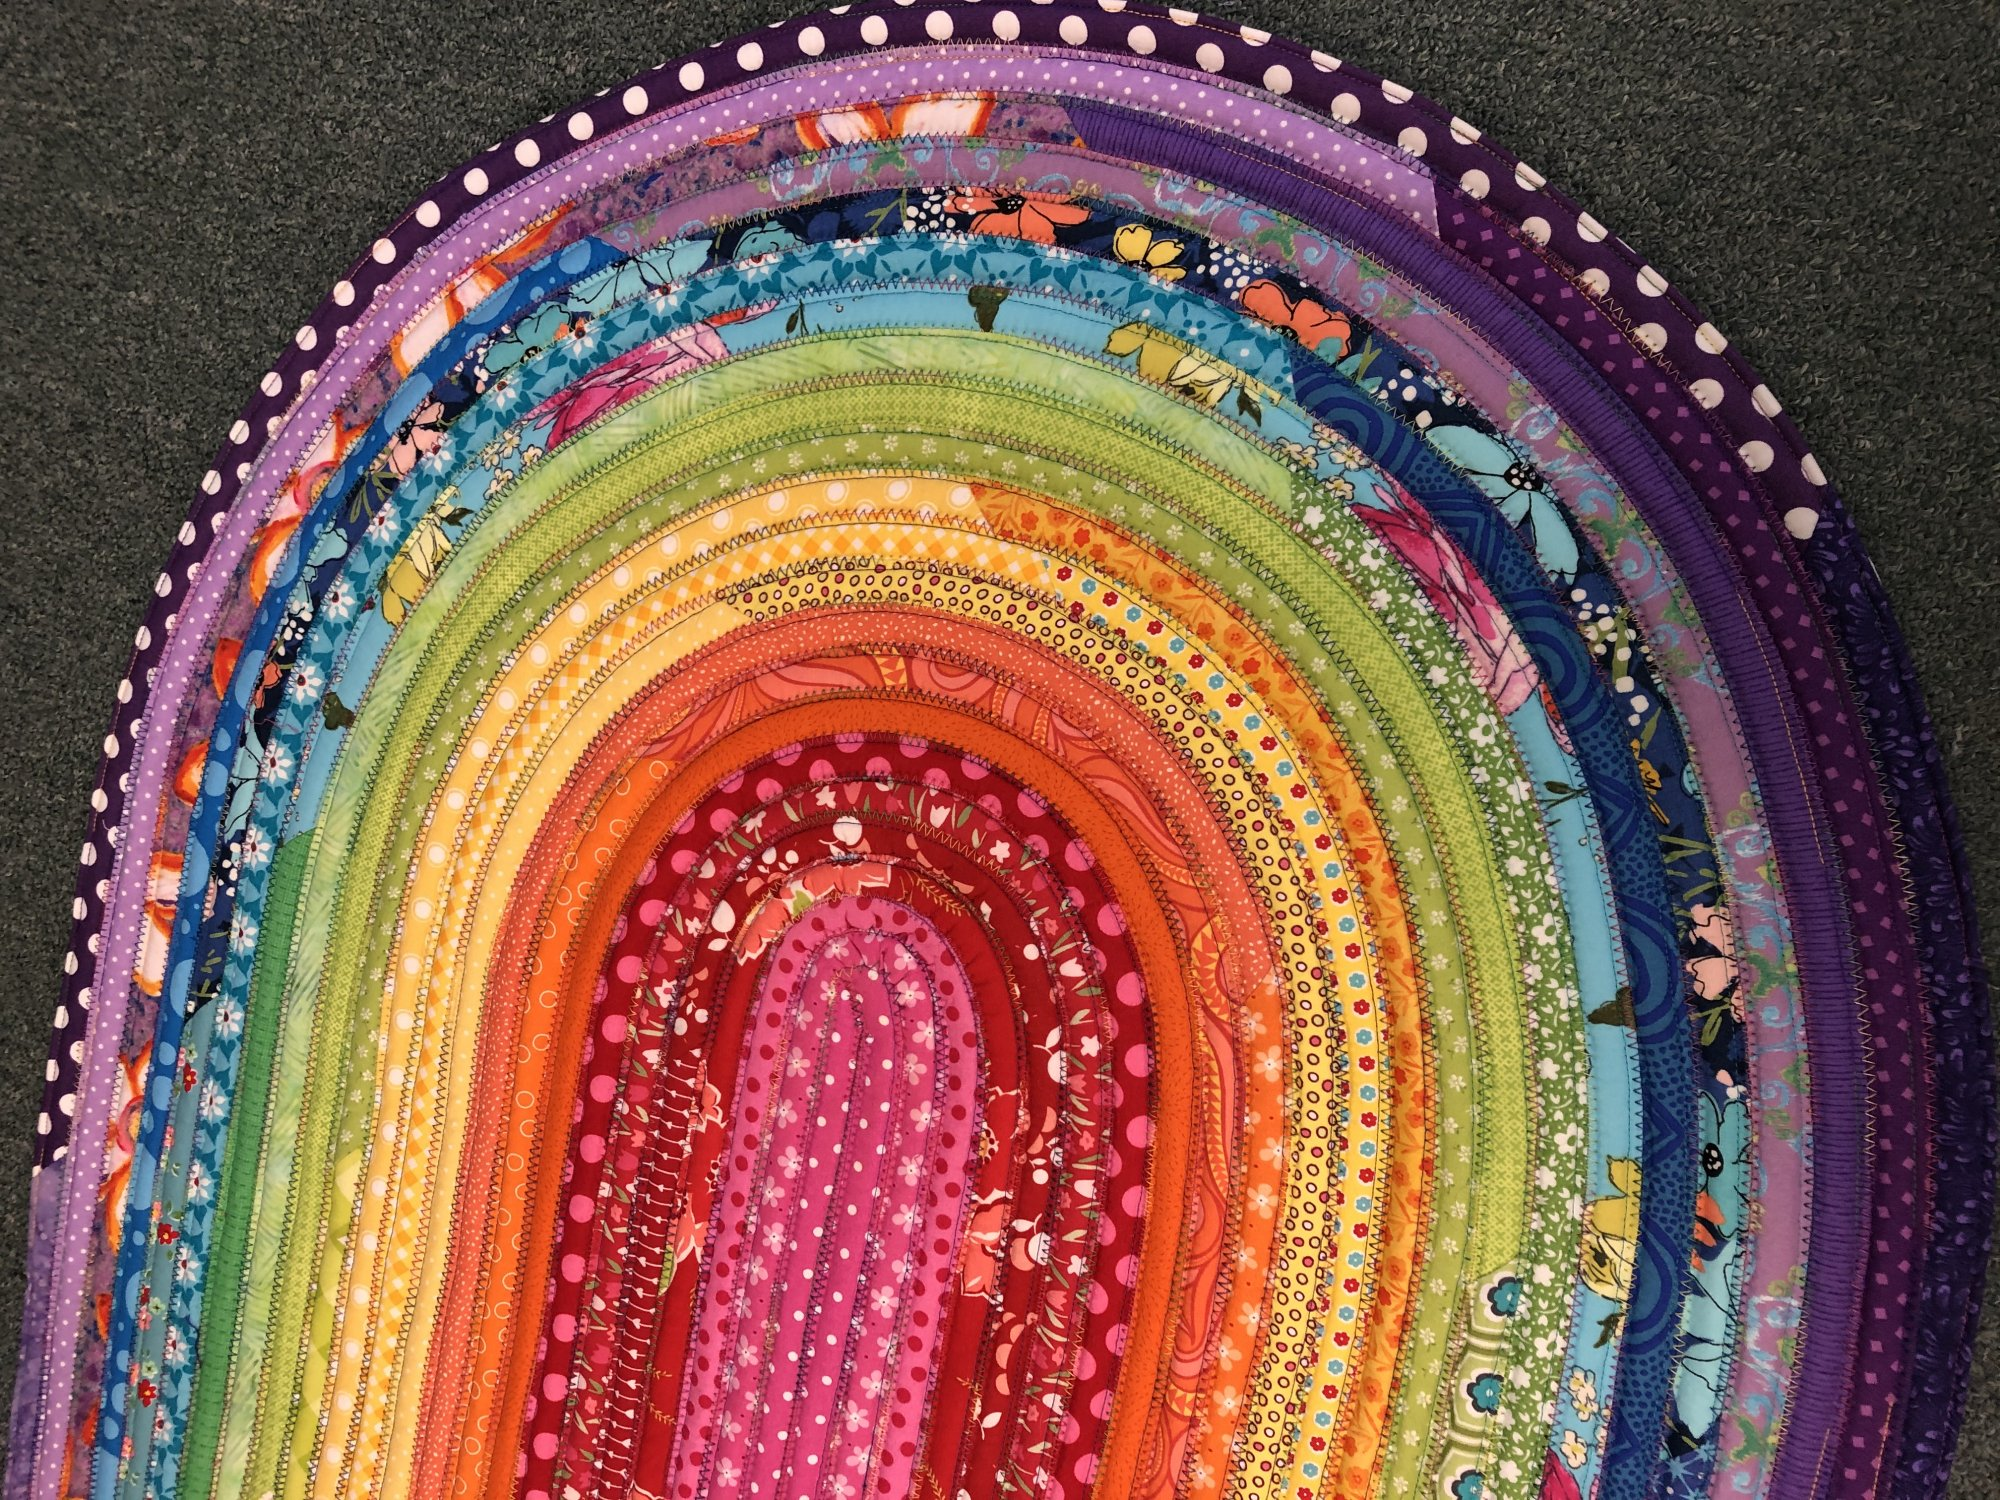 Jelly Roll Rug Kit